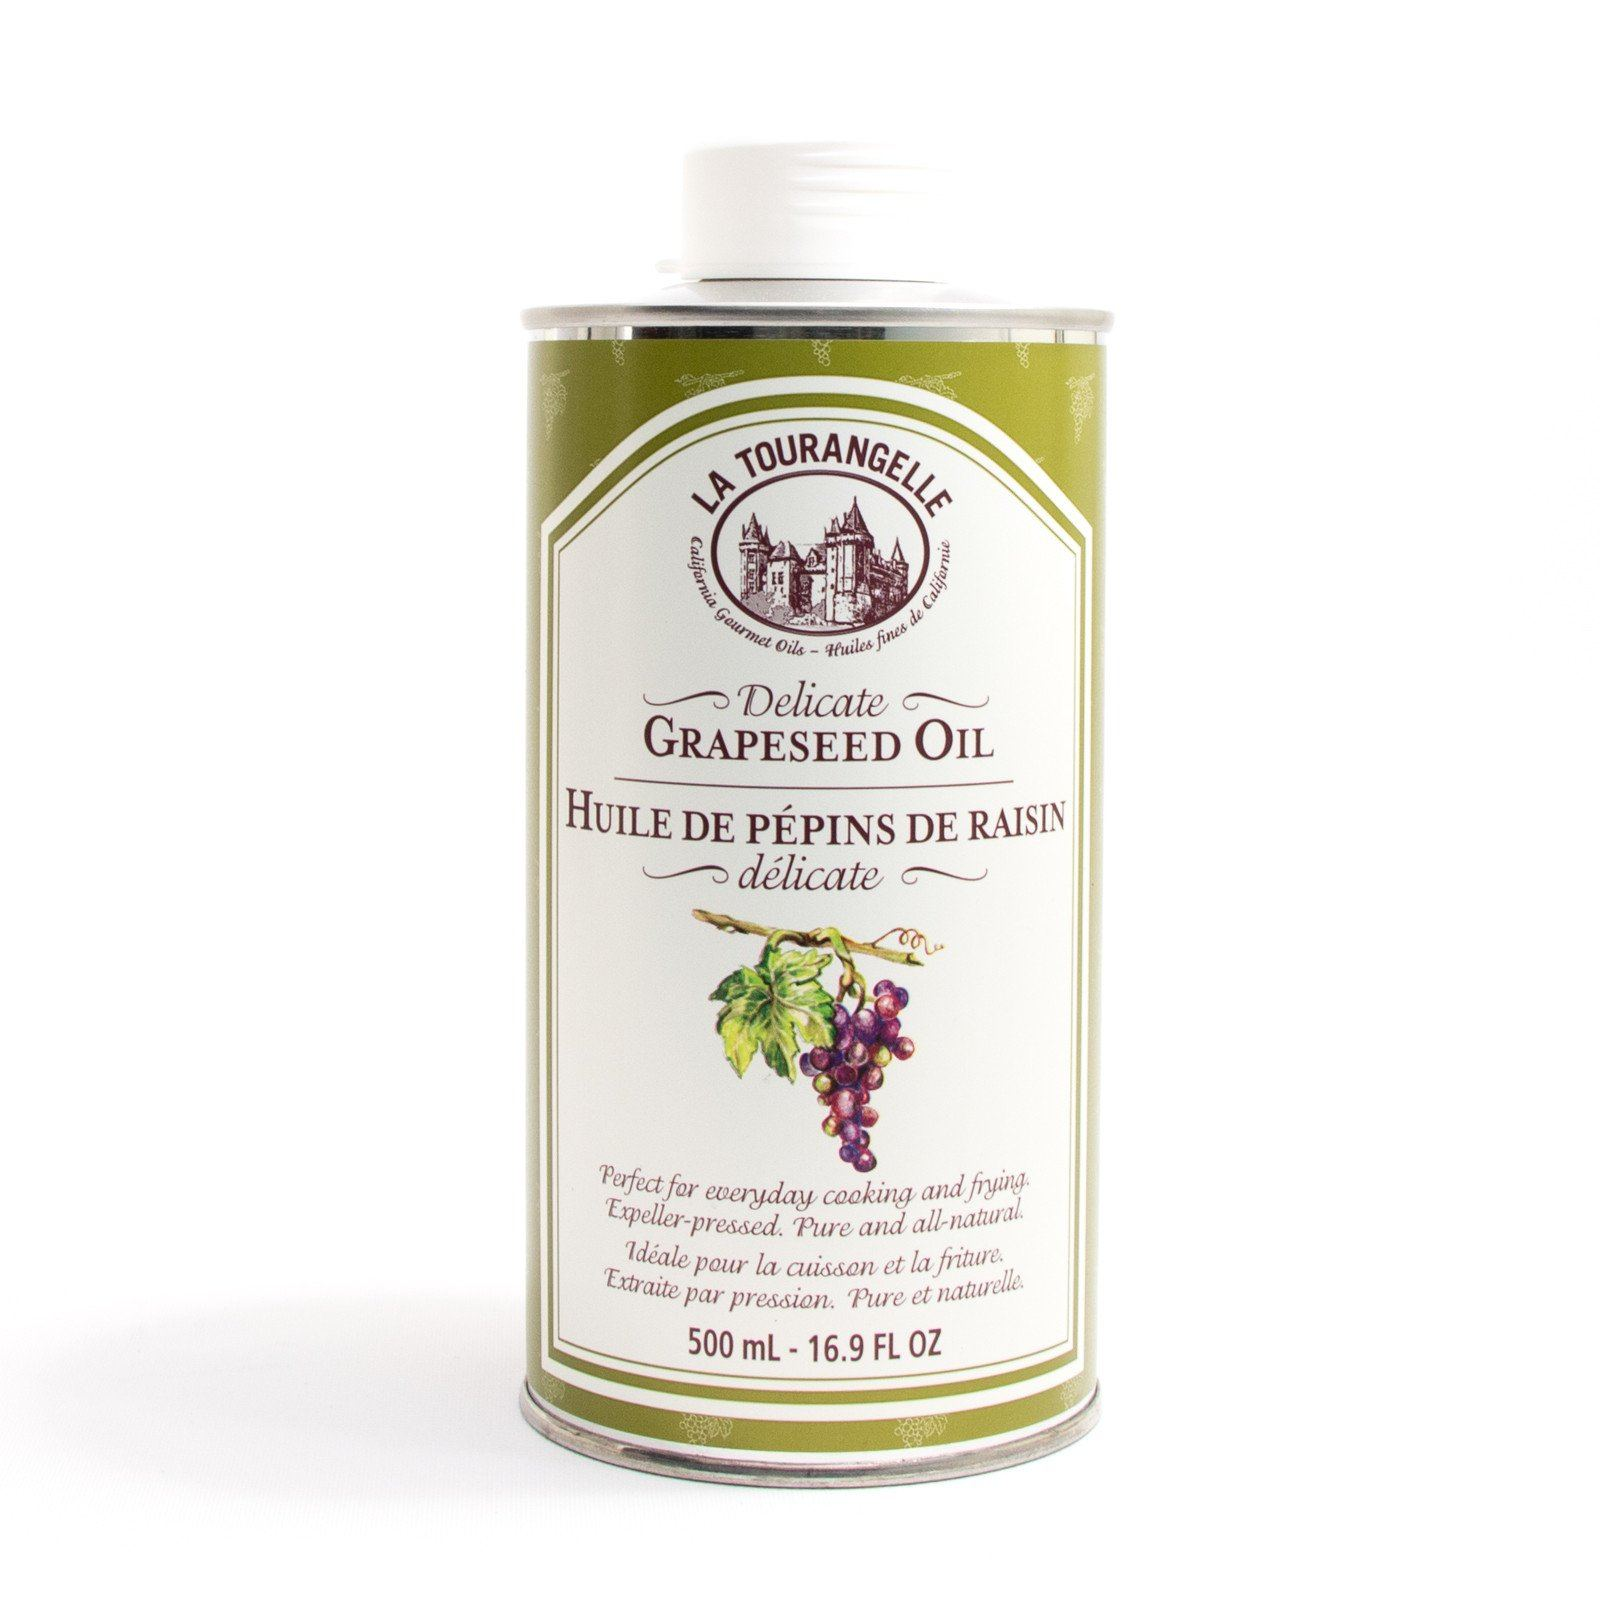 Food & Drink - La Tourangelle - Grapeseed Oil, 500ml